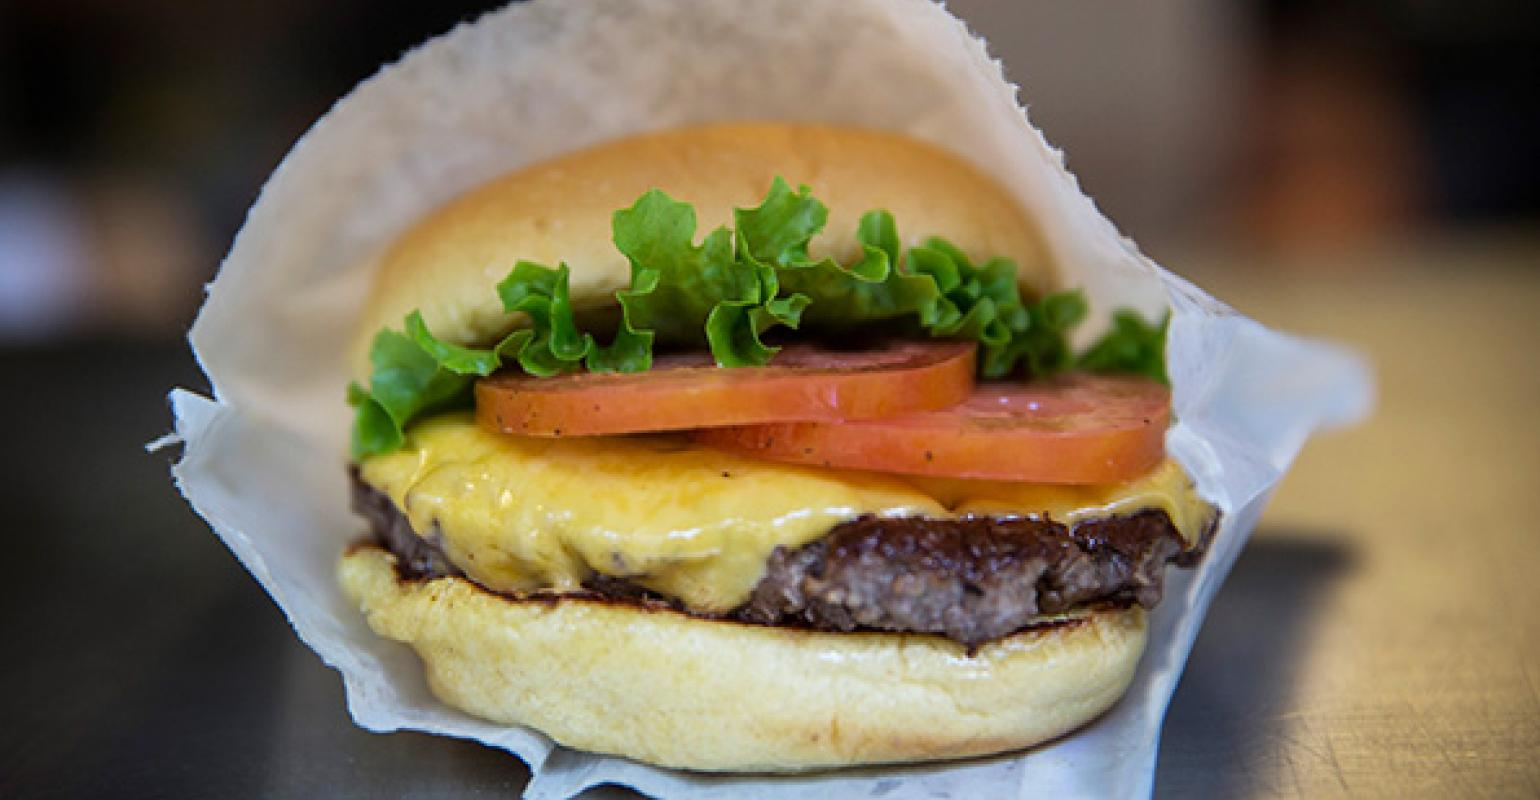 Shake Shack teams with Postmates for burger giveaway